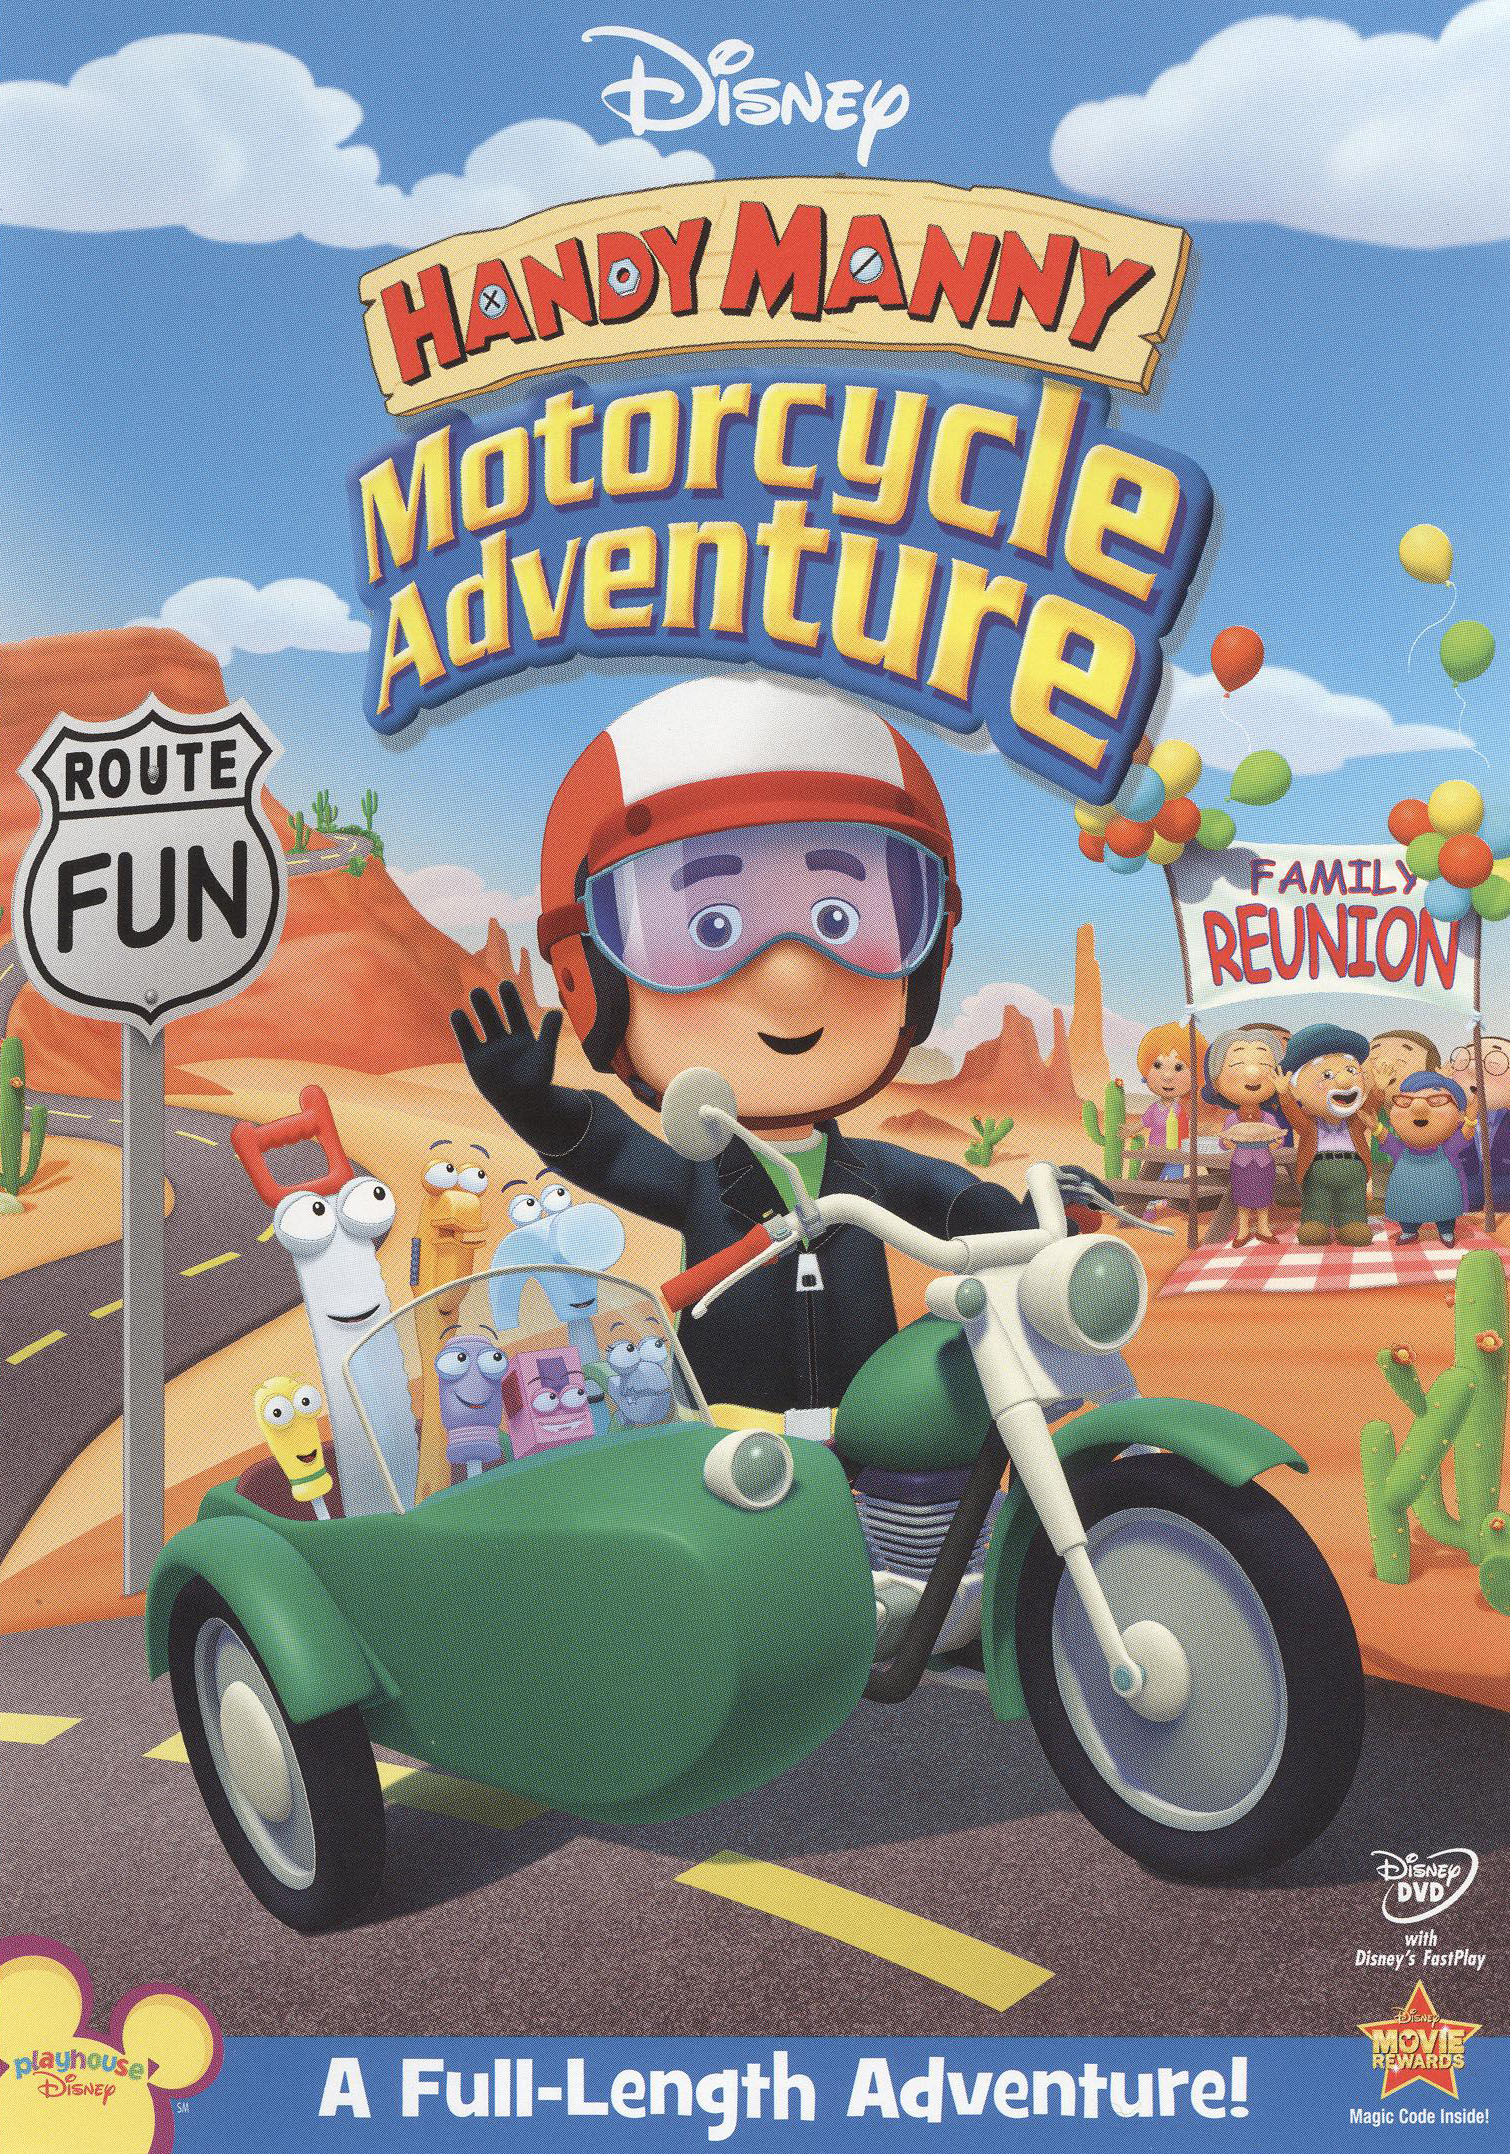 Manny's Best Friend : manny's, friend, Handy, Manny:, Motorcycle, Adventure, [DVD], [2009]